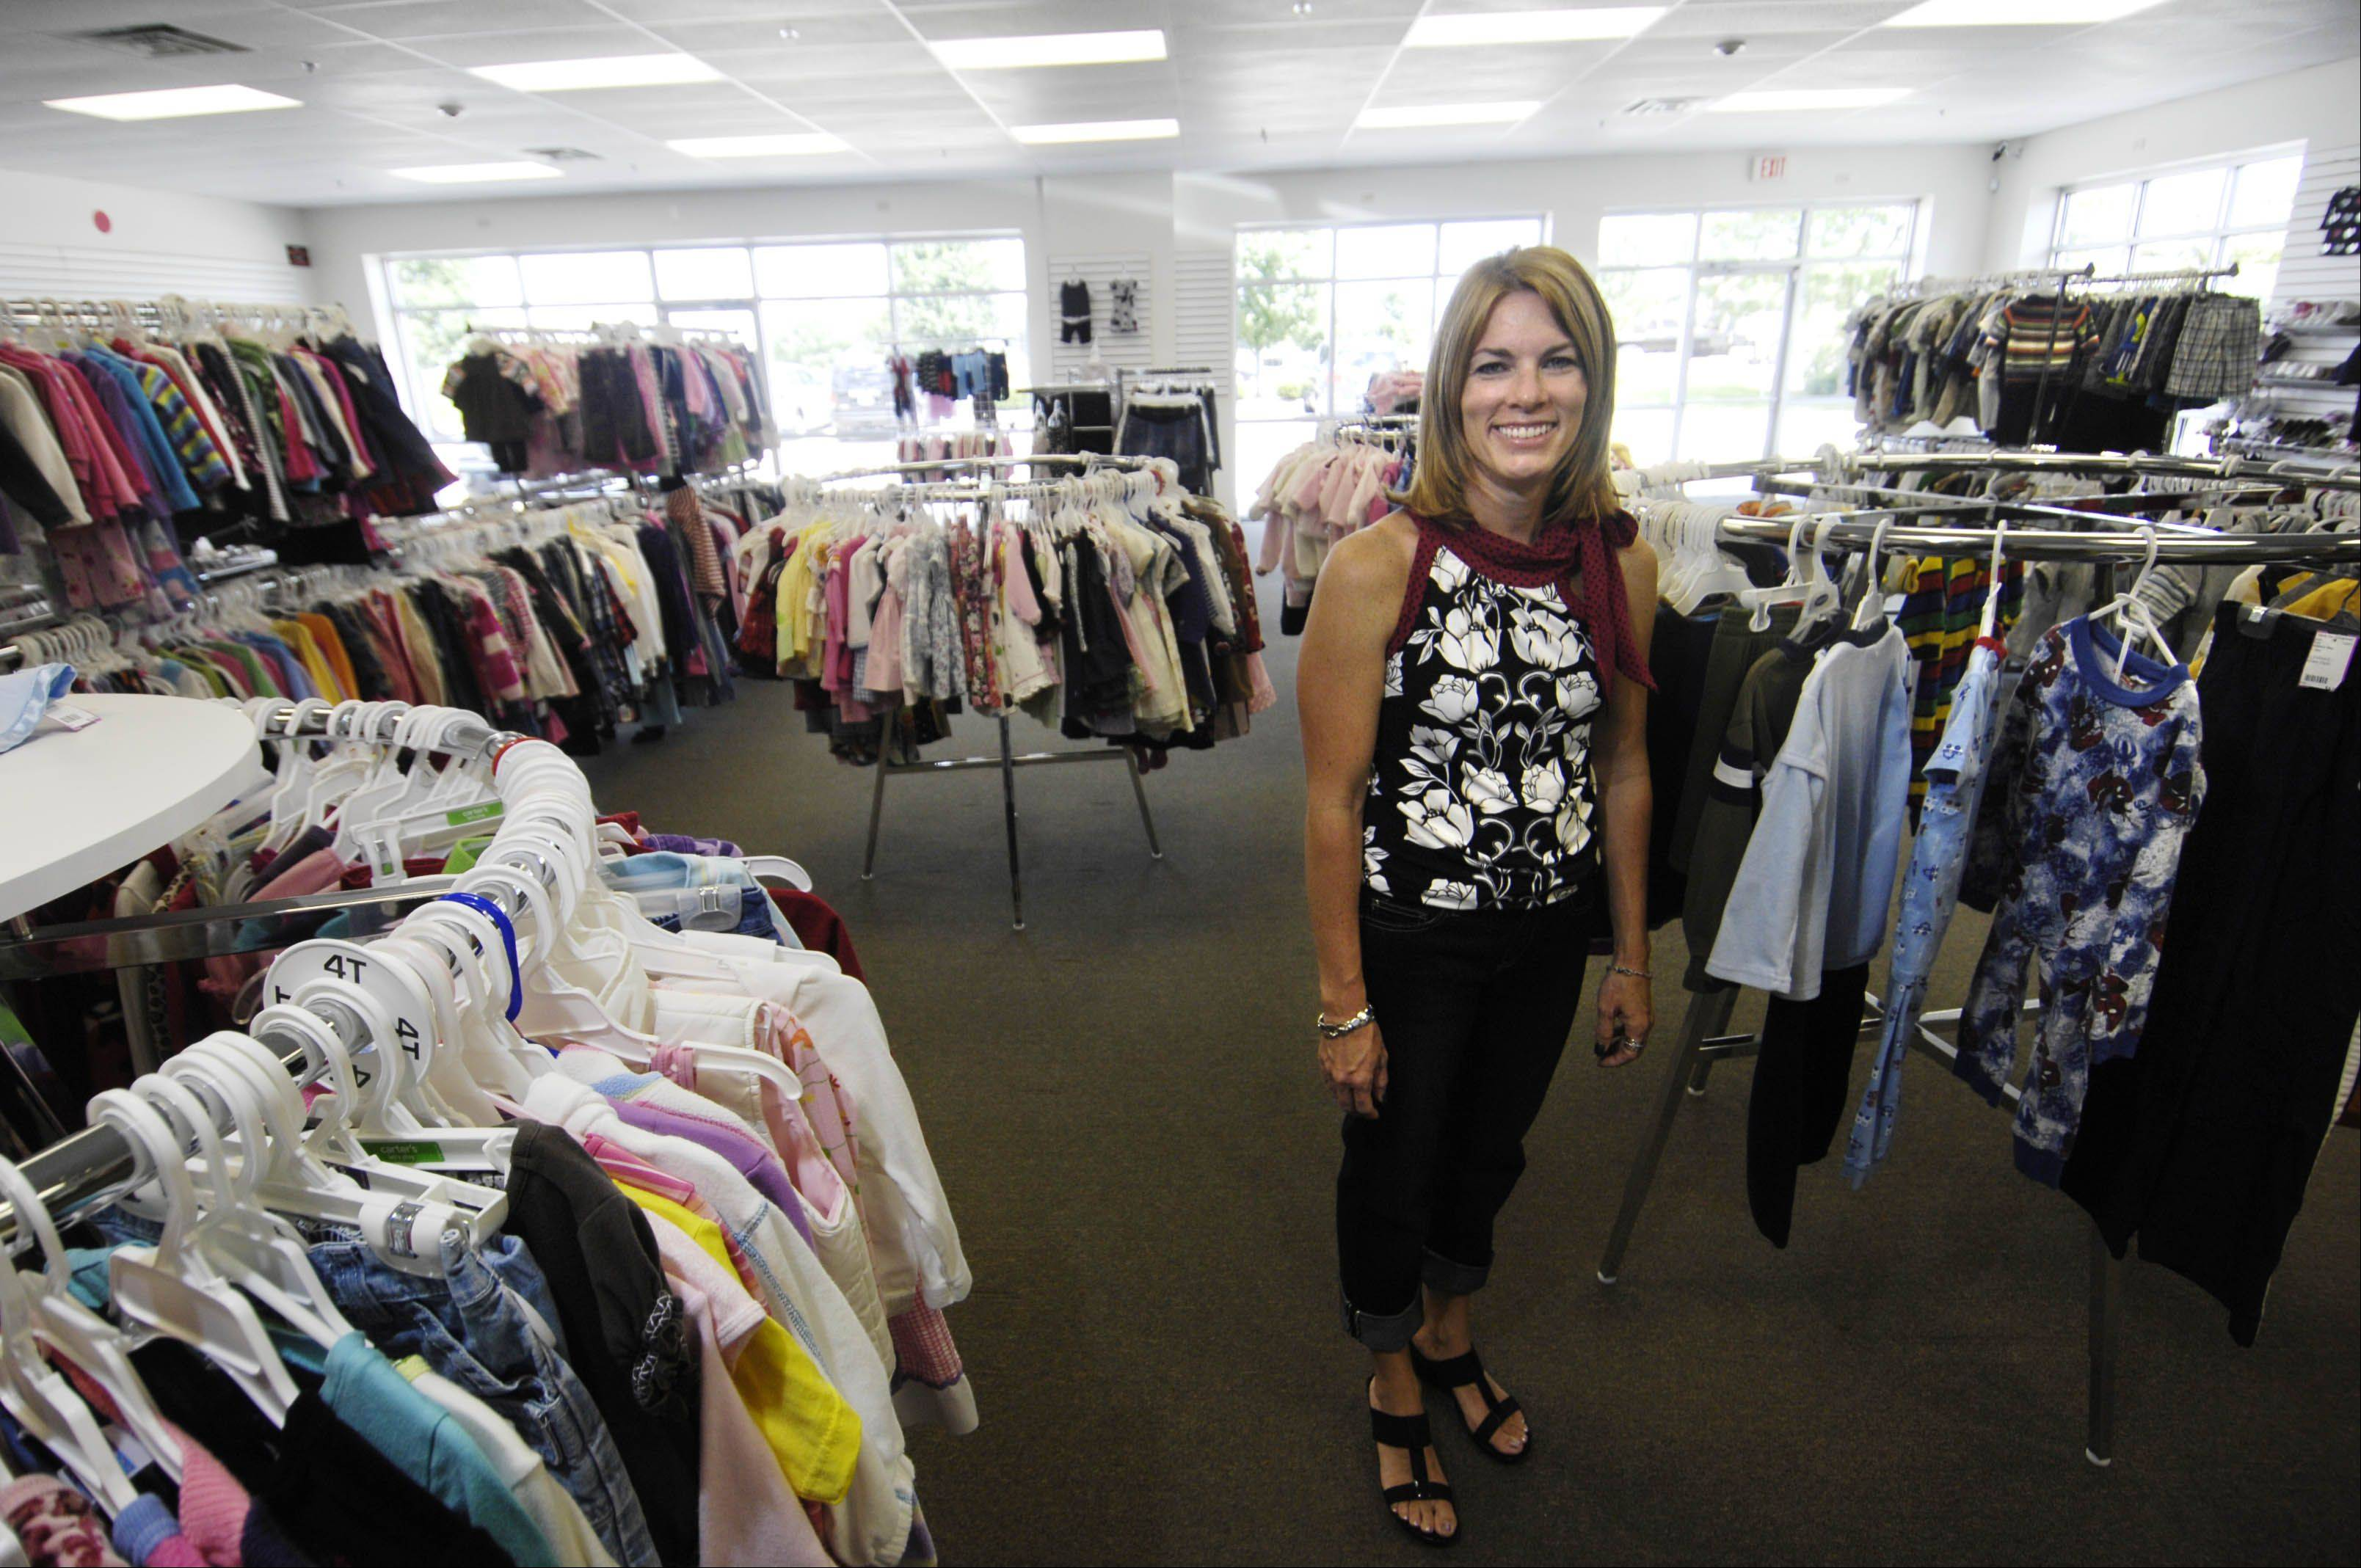 Trendy Tots, a consignment shop at the corner of Huntley and Randall Roads in Carpentersville, offers used Halloween costumes and has planned a Girls Night Out for Friday, Sept. 28.